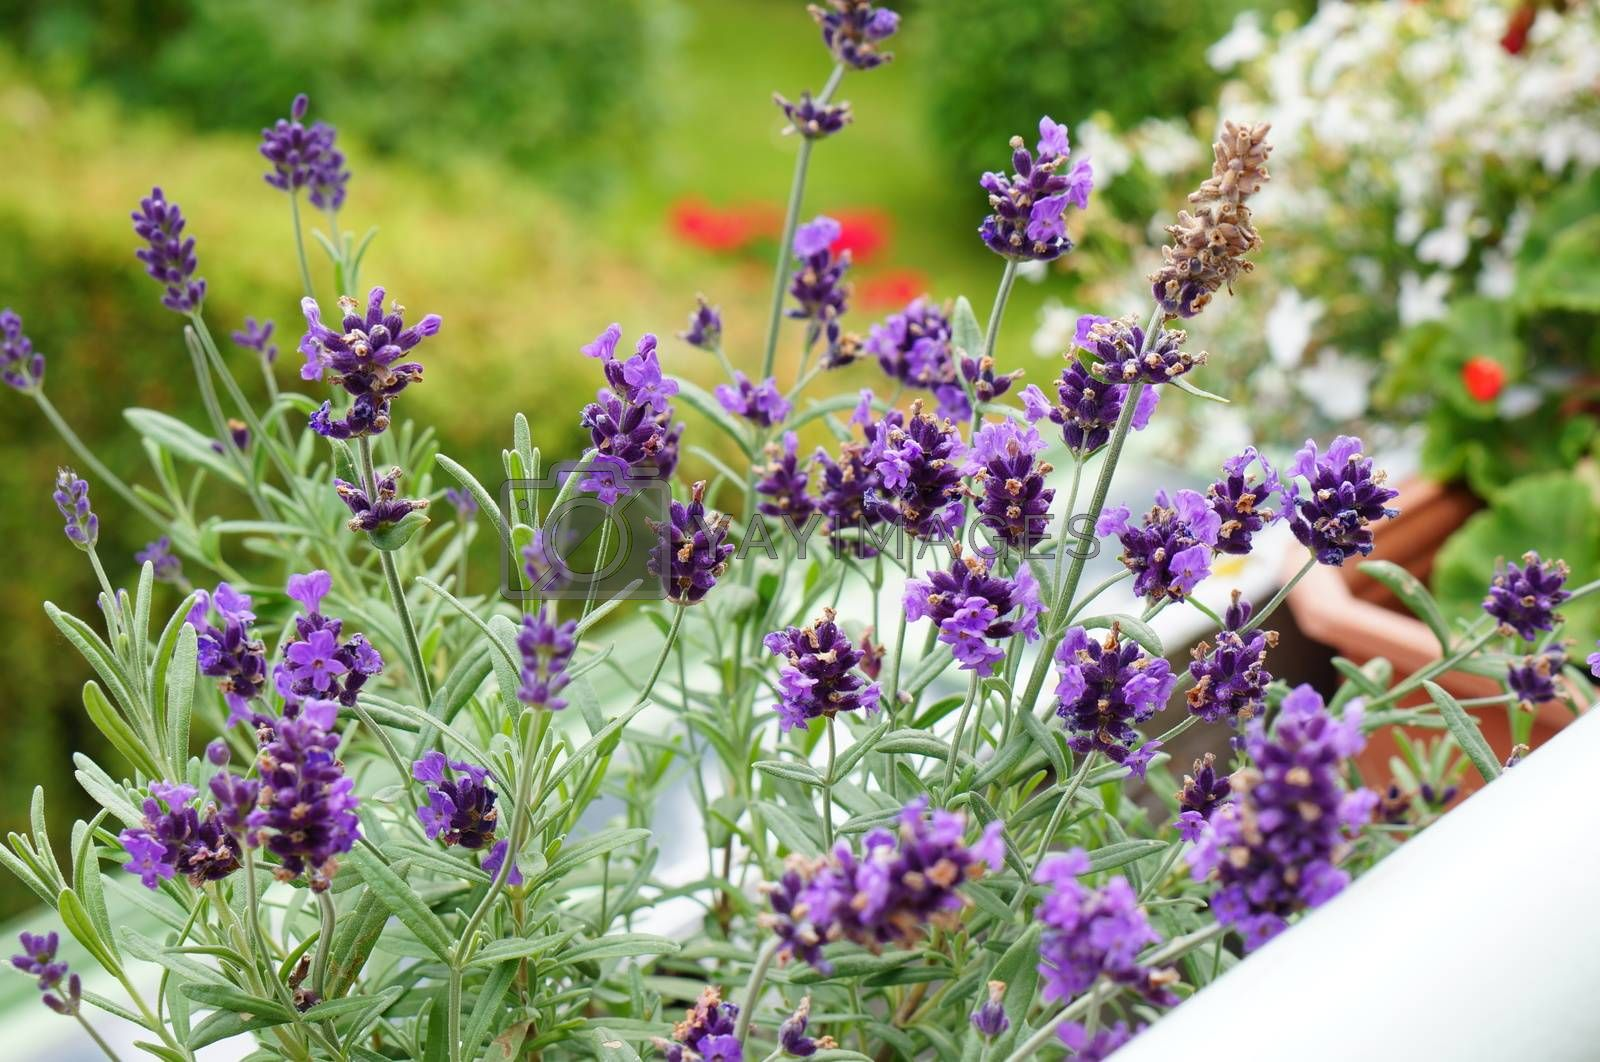 Group of purple lavendel flowers in the garden